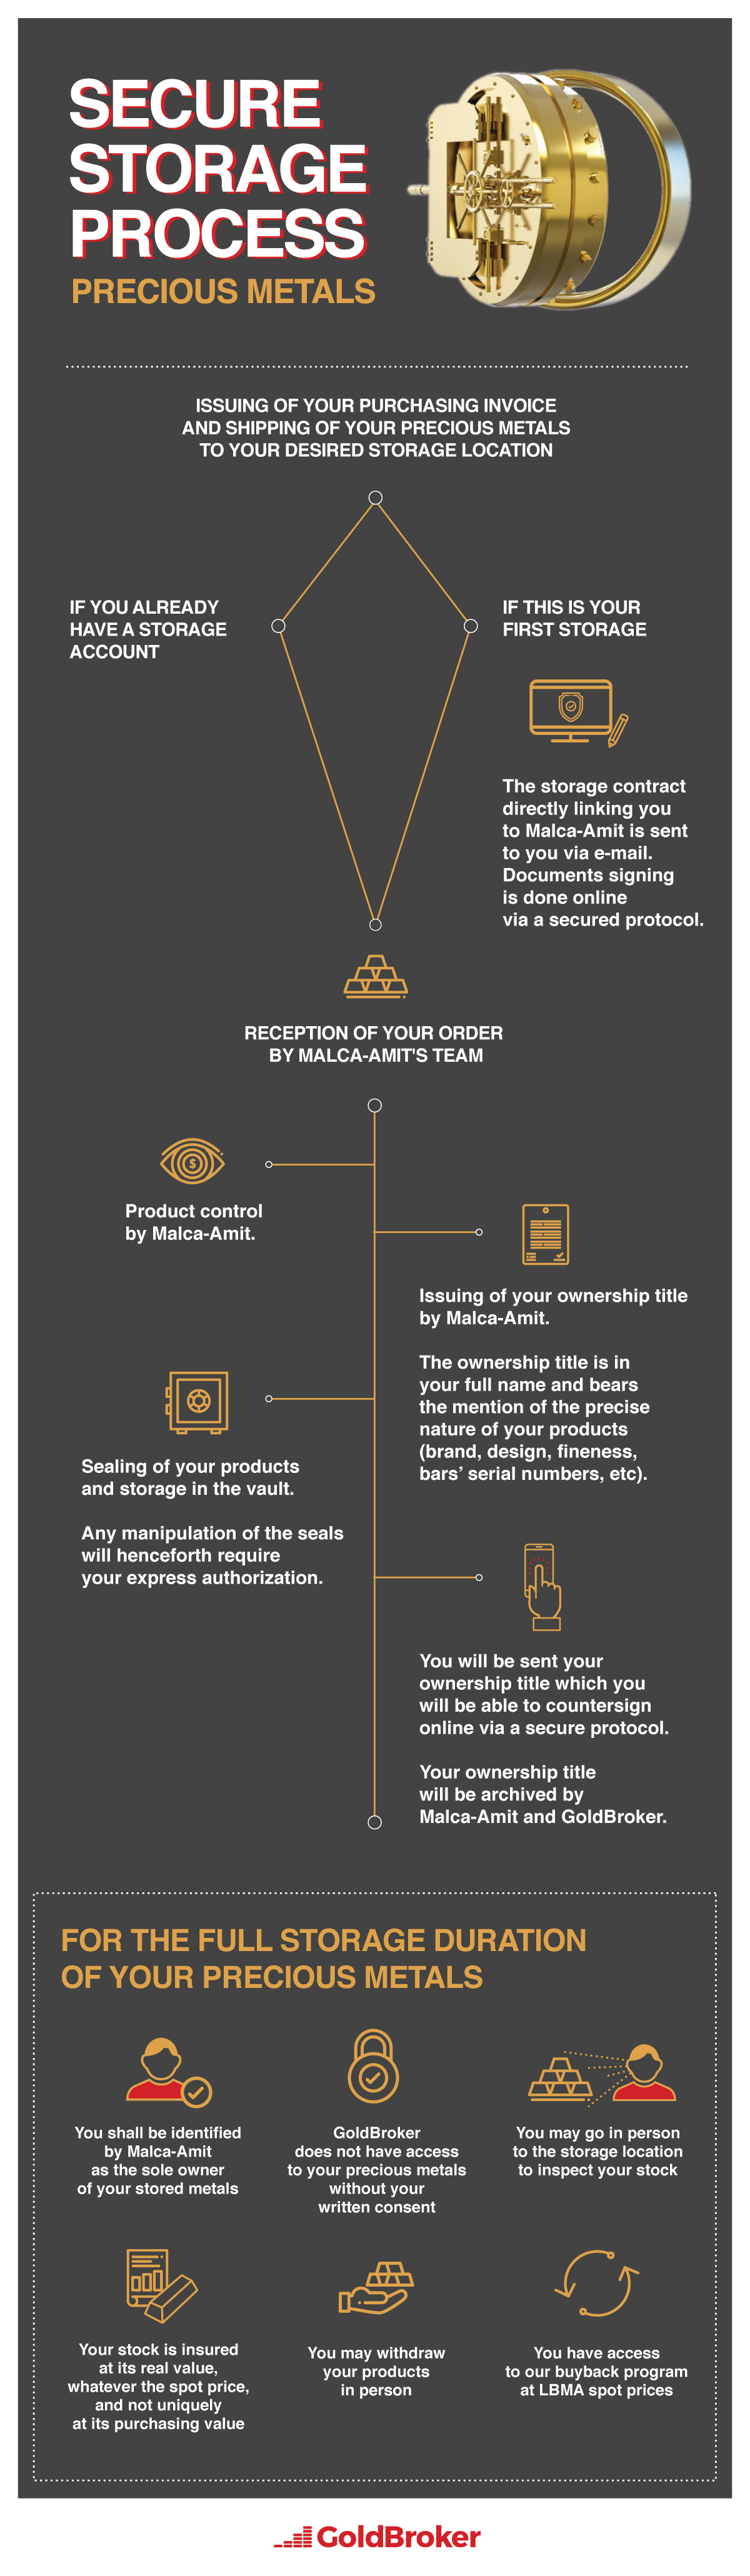 Infographic Precious Metals Dedicated Storage Process